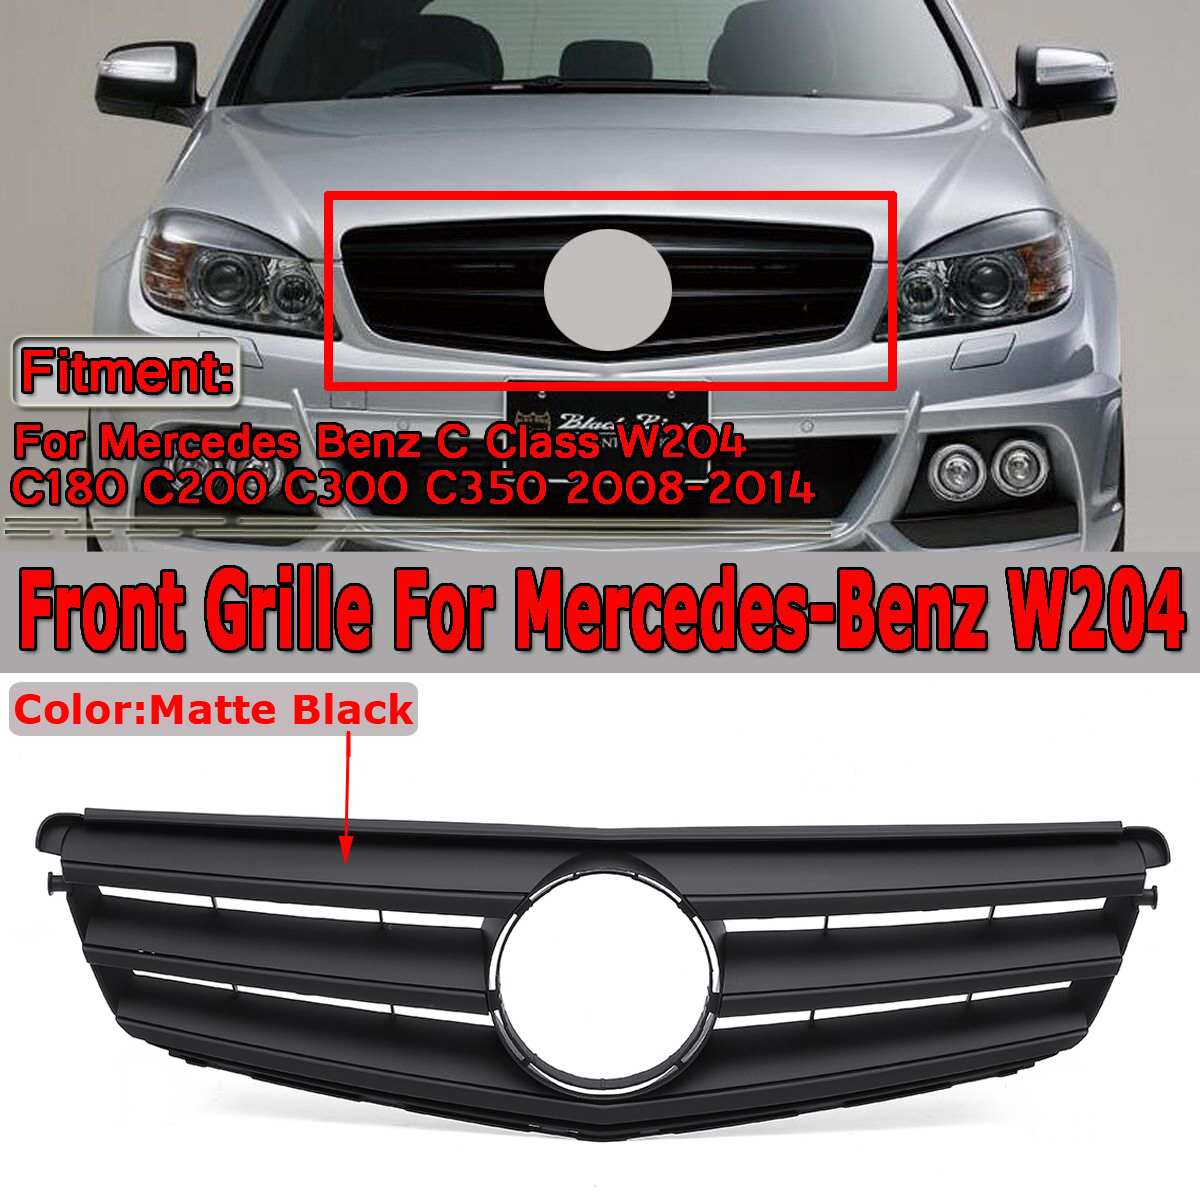 High Quality Car Front Grille Grill For Mercedes For Benz C Class W204 C180 C200 C300 C350 2008-14 Racing Grills Without EmblemHigh Quality Car Front Grille Grill For Mercedes For Benz C Class W204 C180 C200 C300 C350 2008-14 Racing Grills Without Emblem